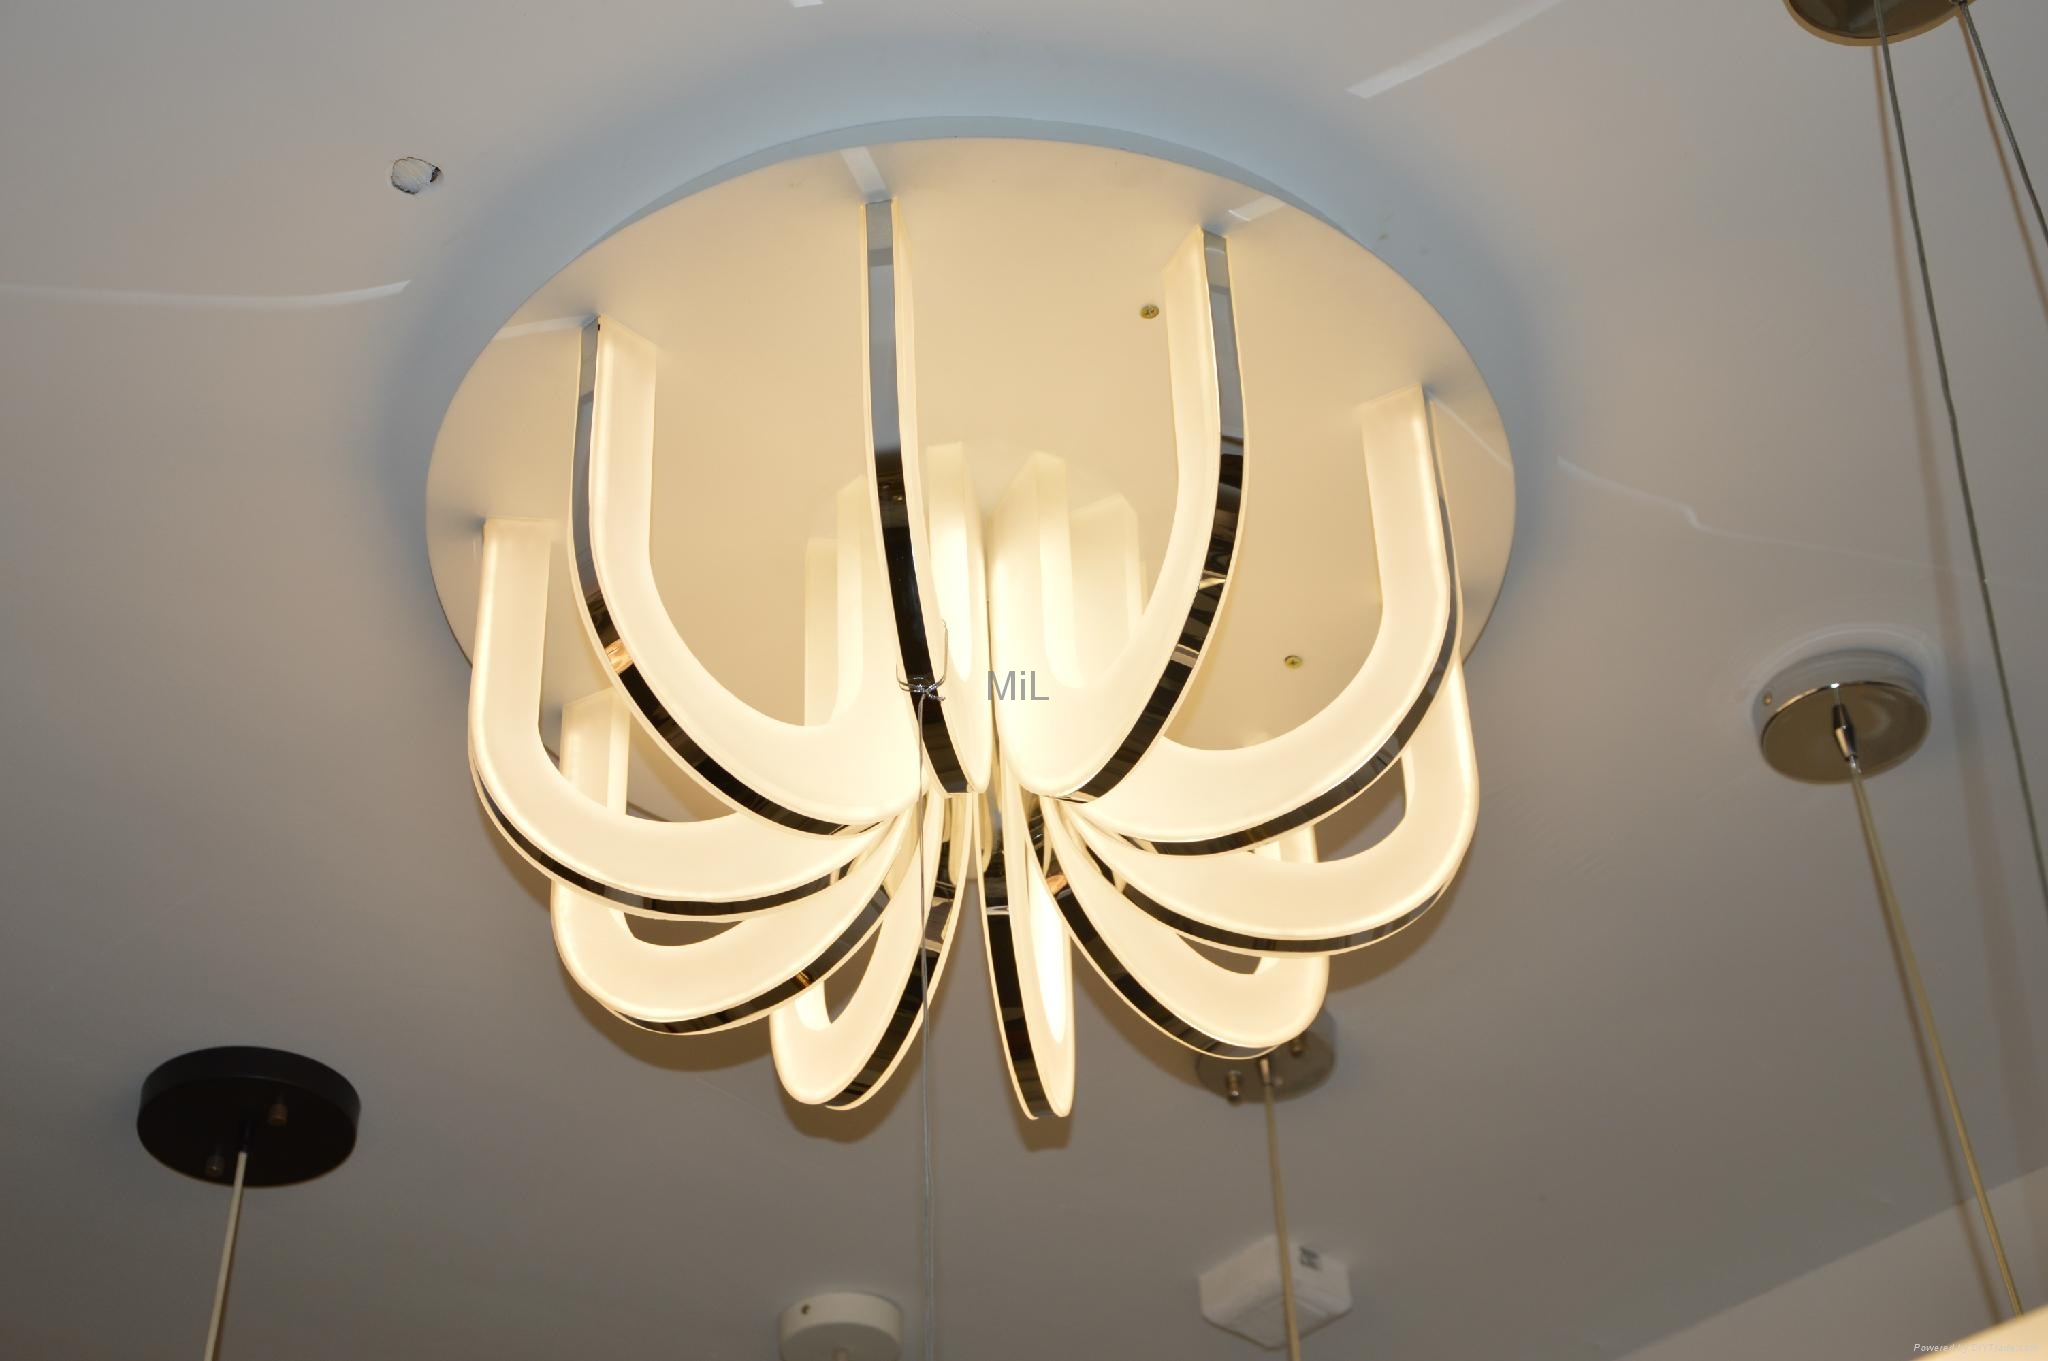 Hot selling decorative ceiling diffuser for agents mil for Decorative diffuser